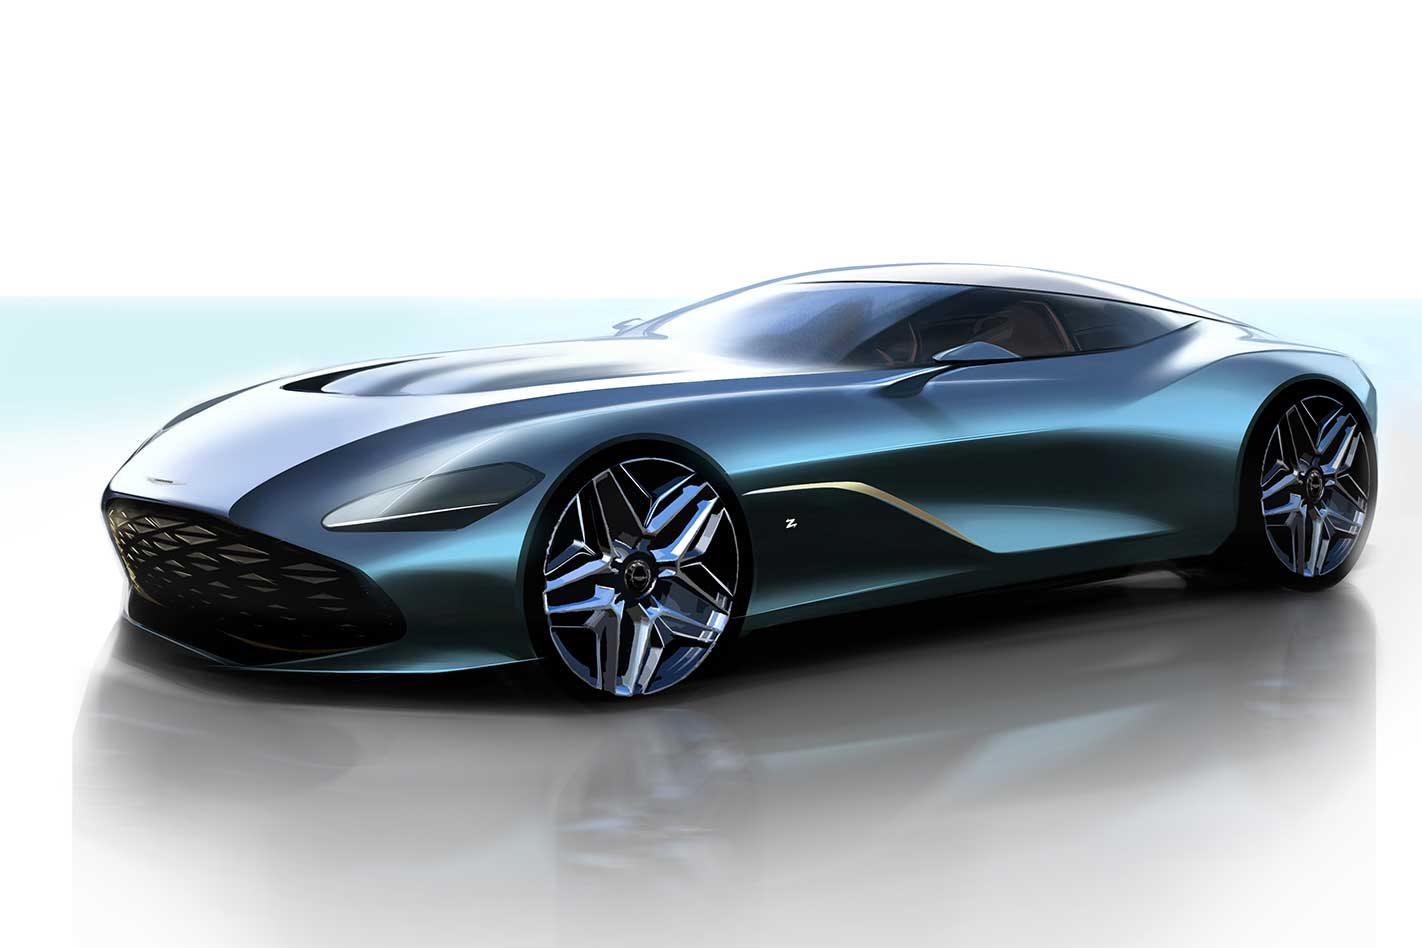 aston martin dbs gt zagato design concept revealed